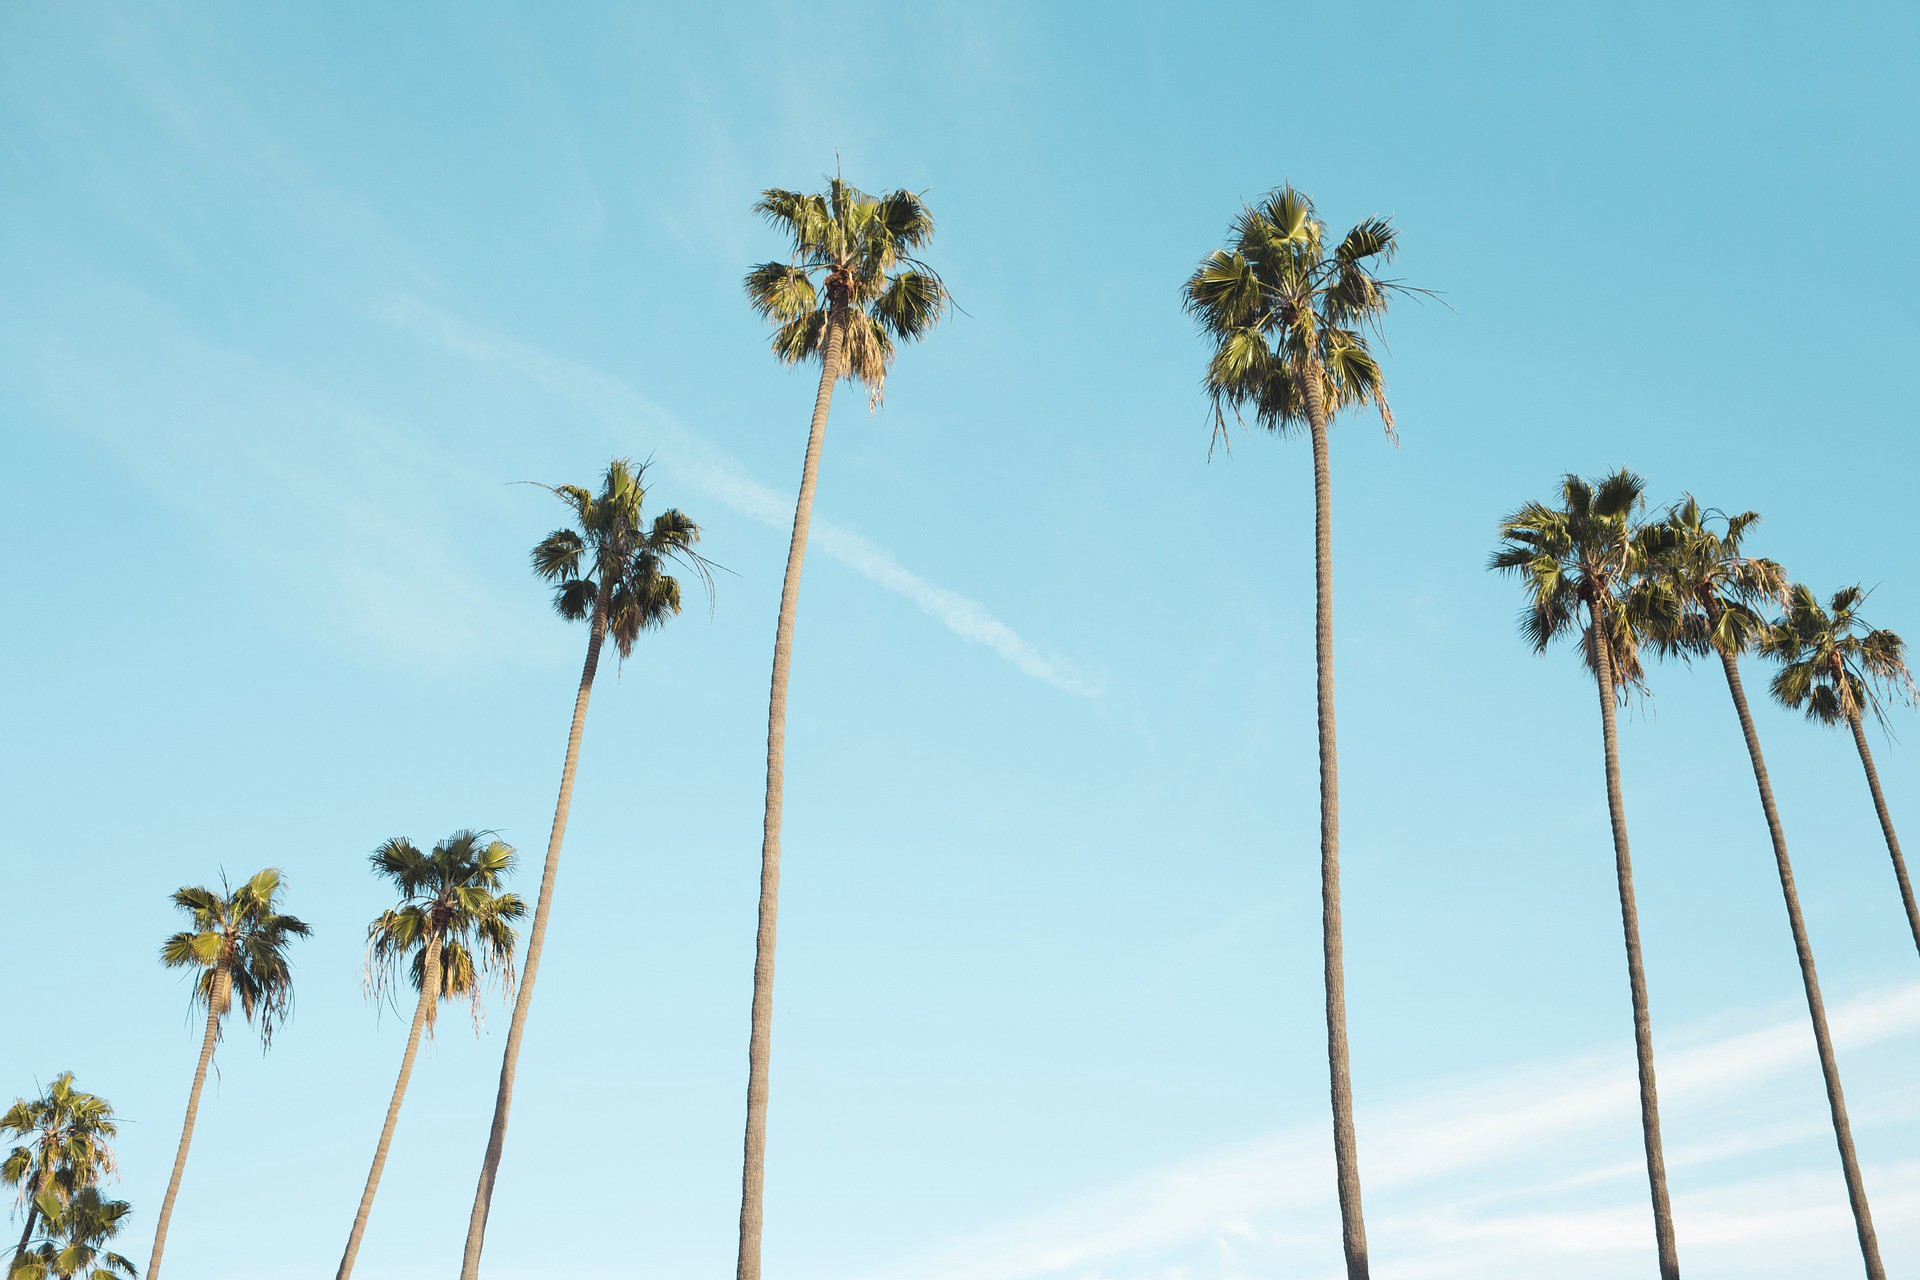 Palm trees rustling in the breeze become audible when people everywhere in the US are sheltering in place.